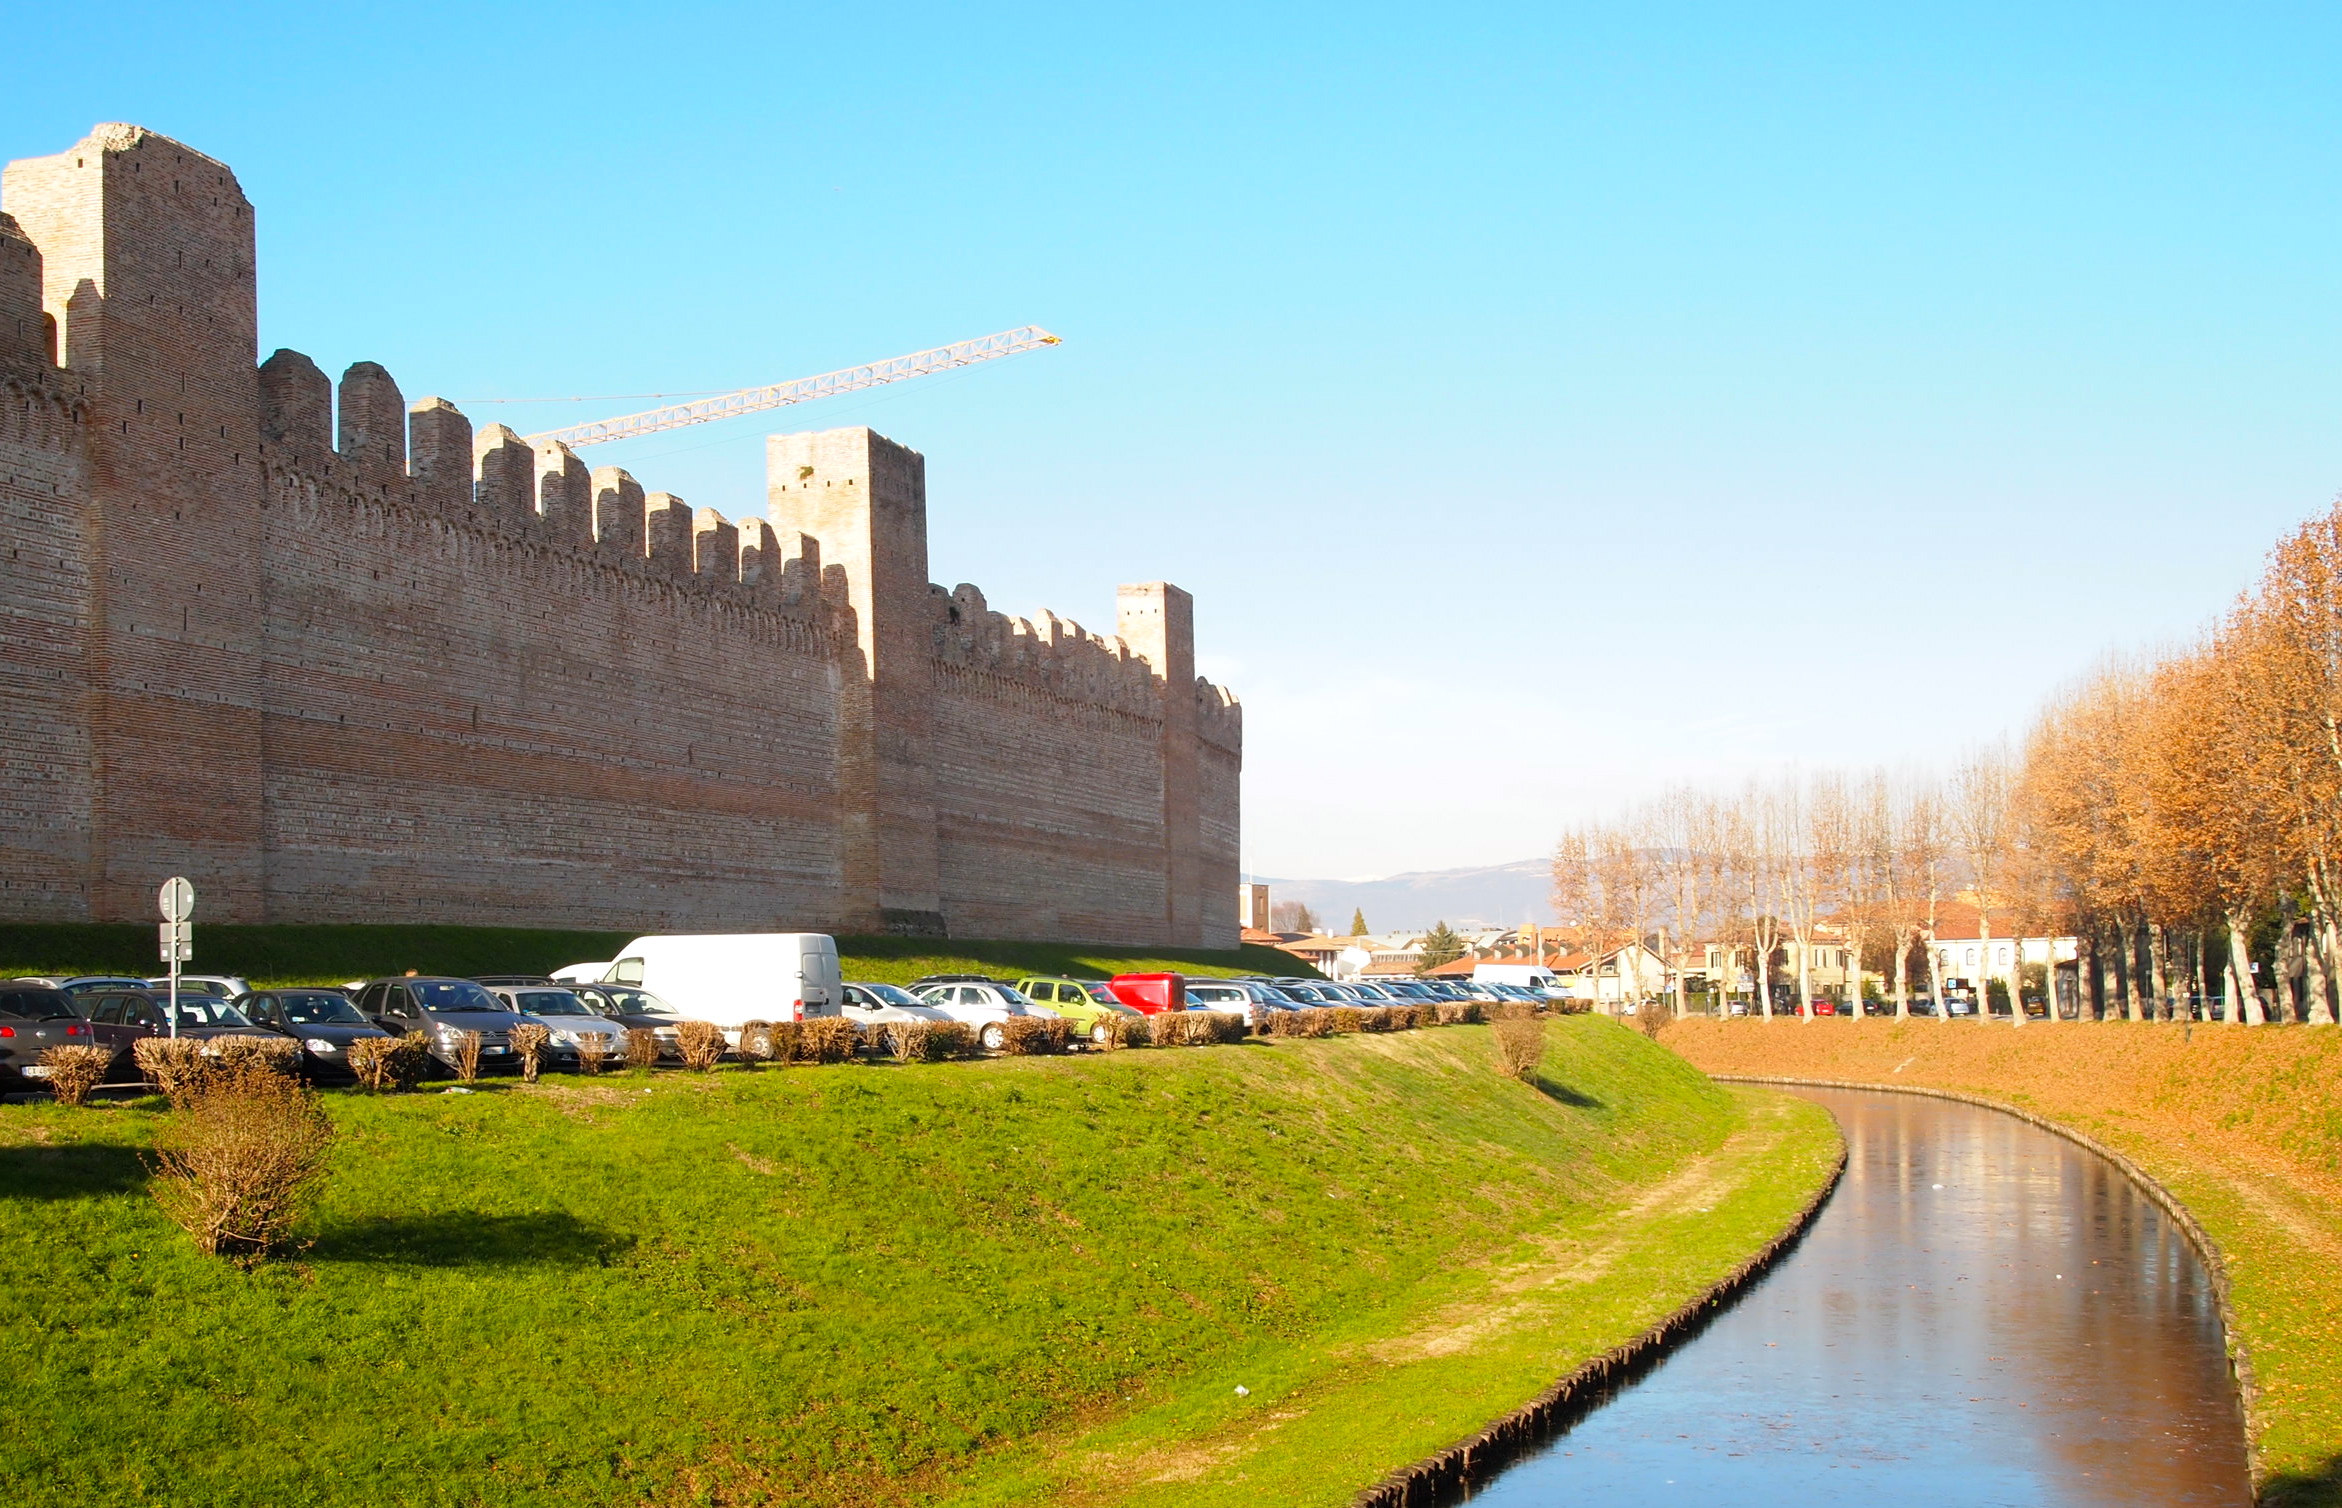 city wall of Cittadella and its moat